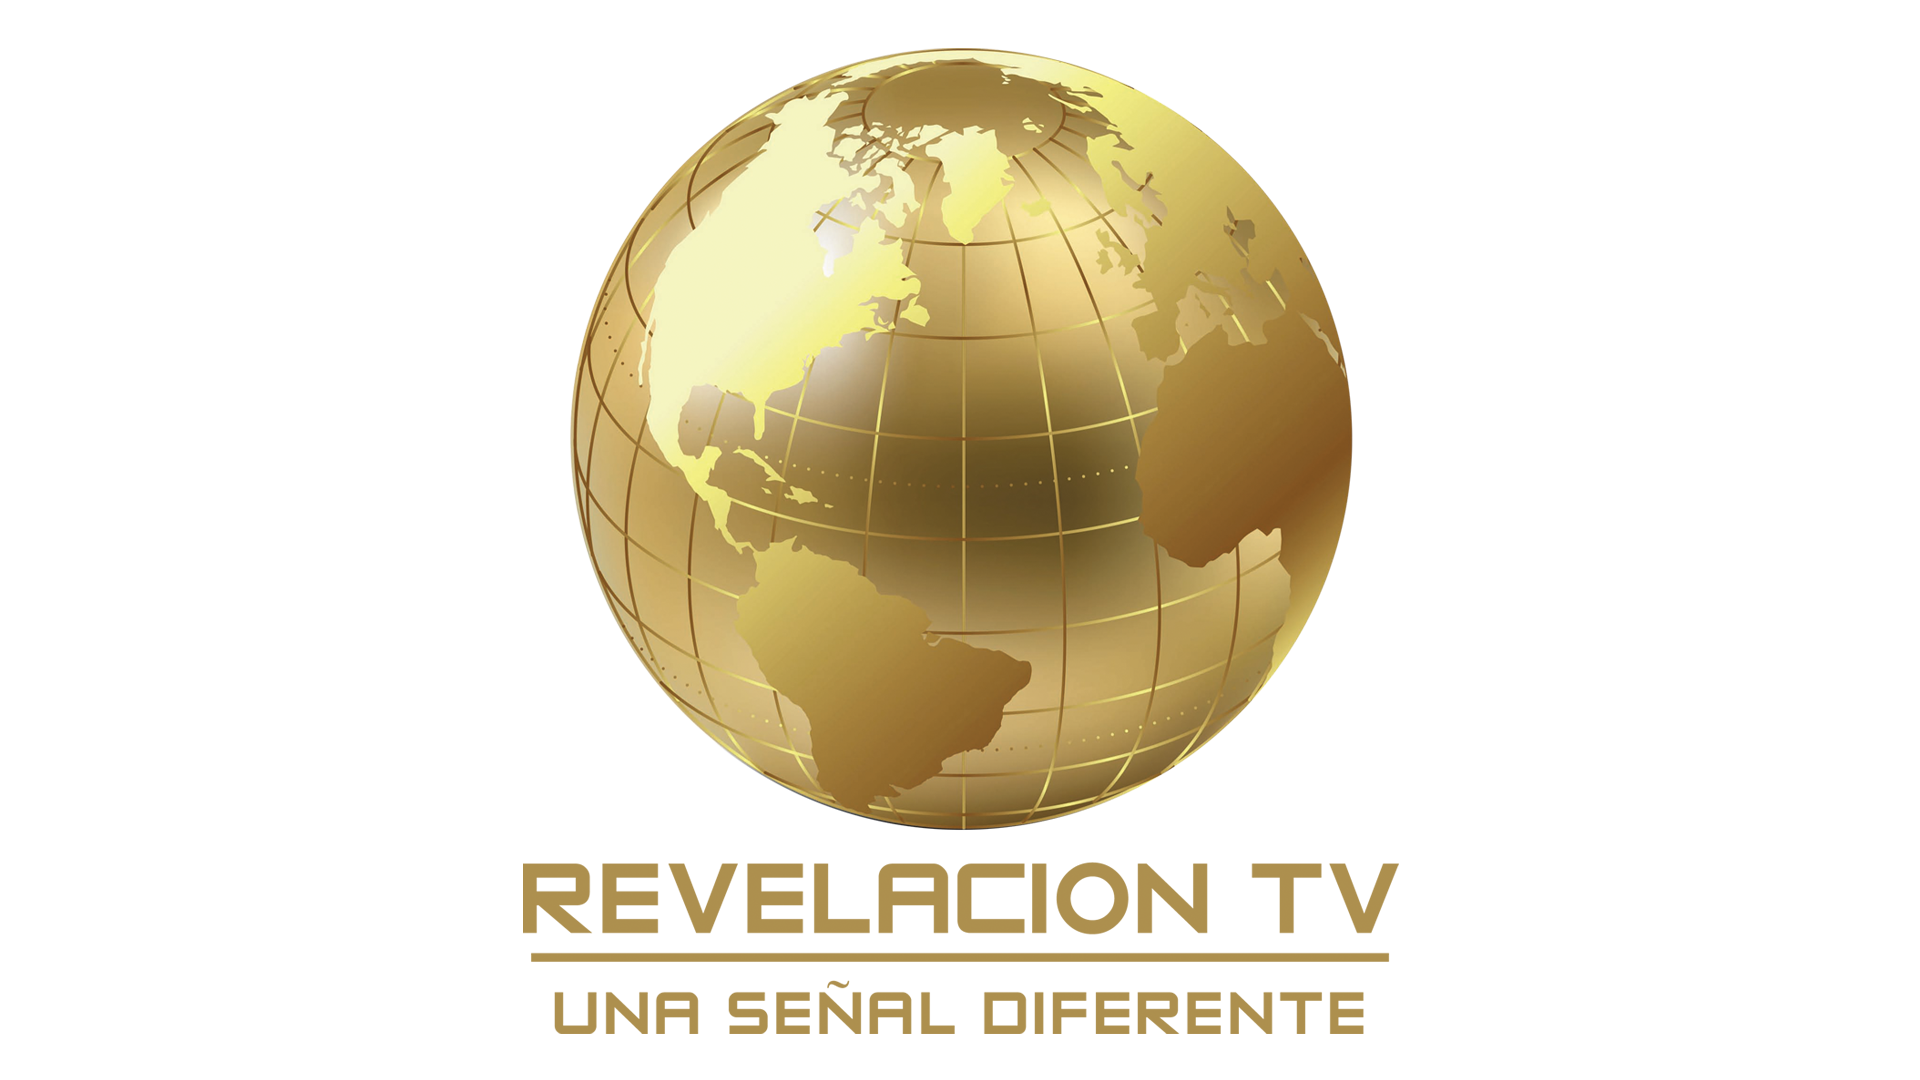 Revelacion TV of Dallas, TX